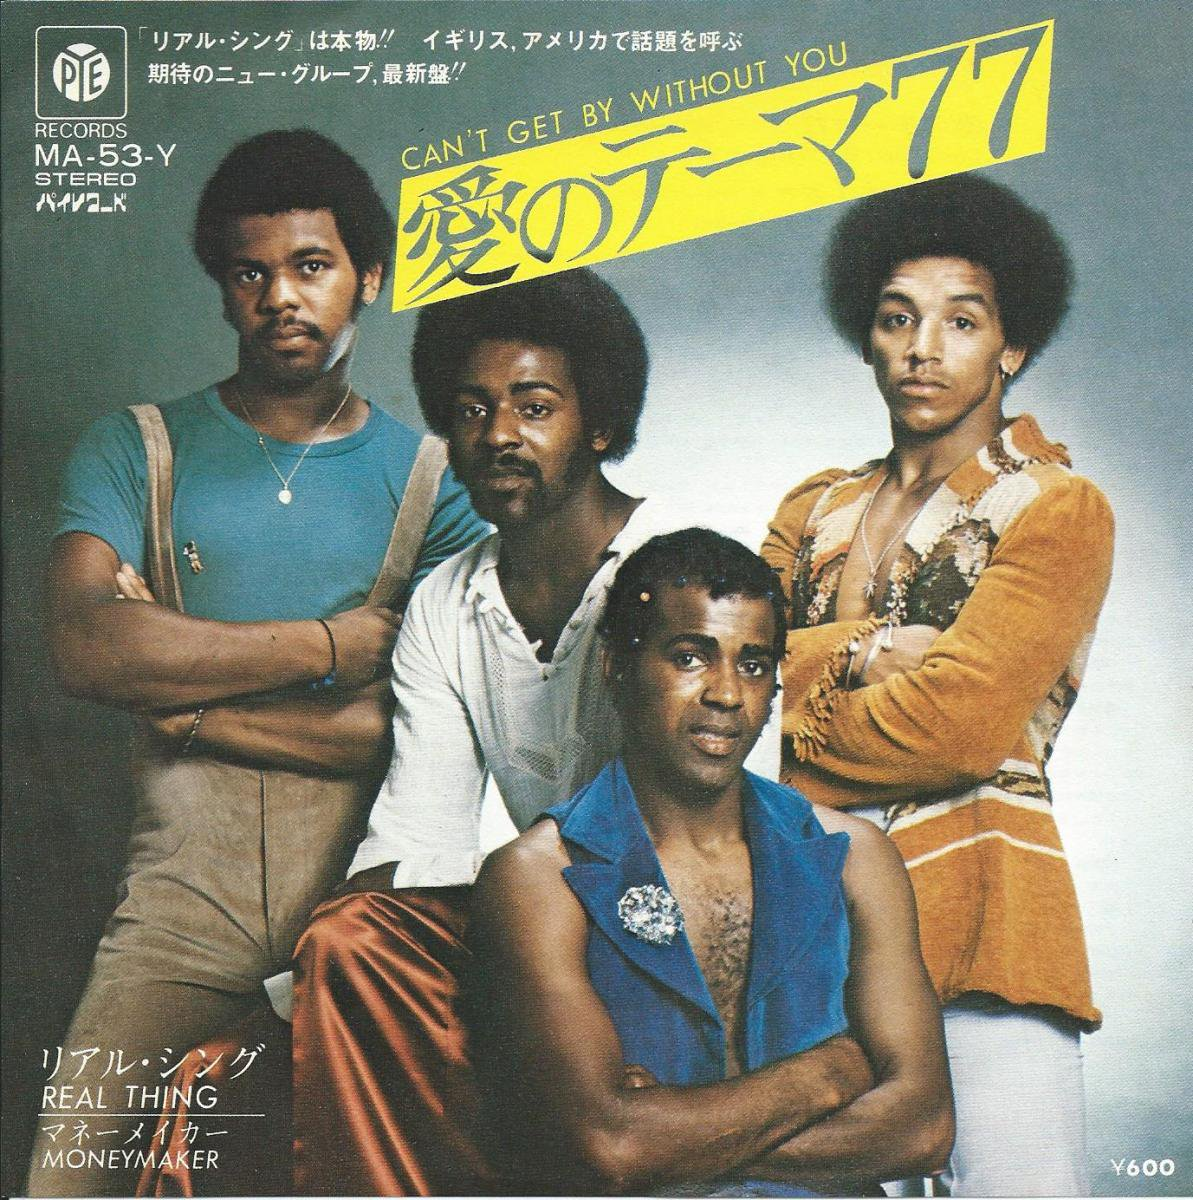 リアル・シング THE REAL THING / 愛のテーマ77 CAN'T GET BY WITHOUT YOU / マネーメイカー (HE'S JUST A) MONEYMAKER (7